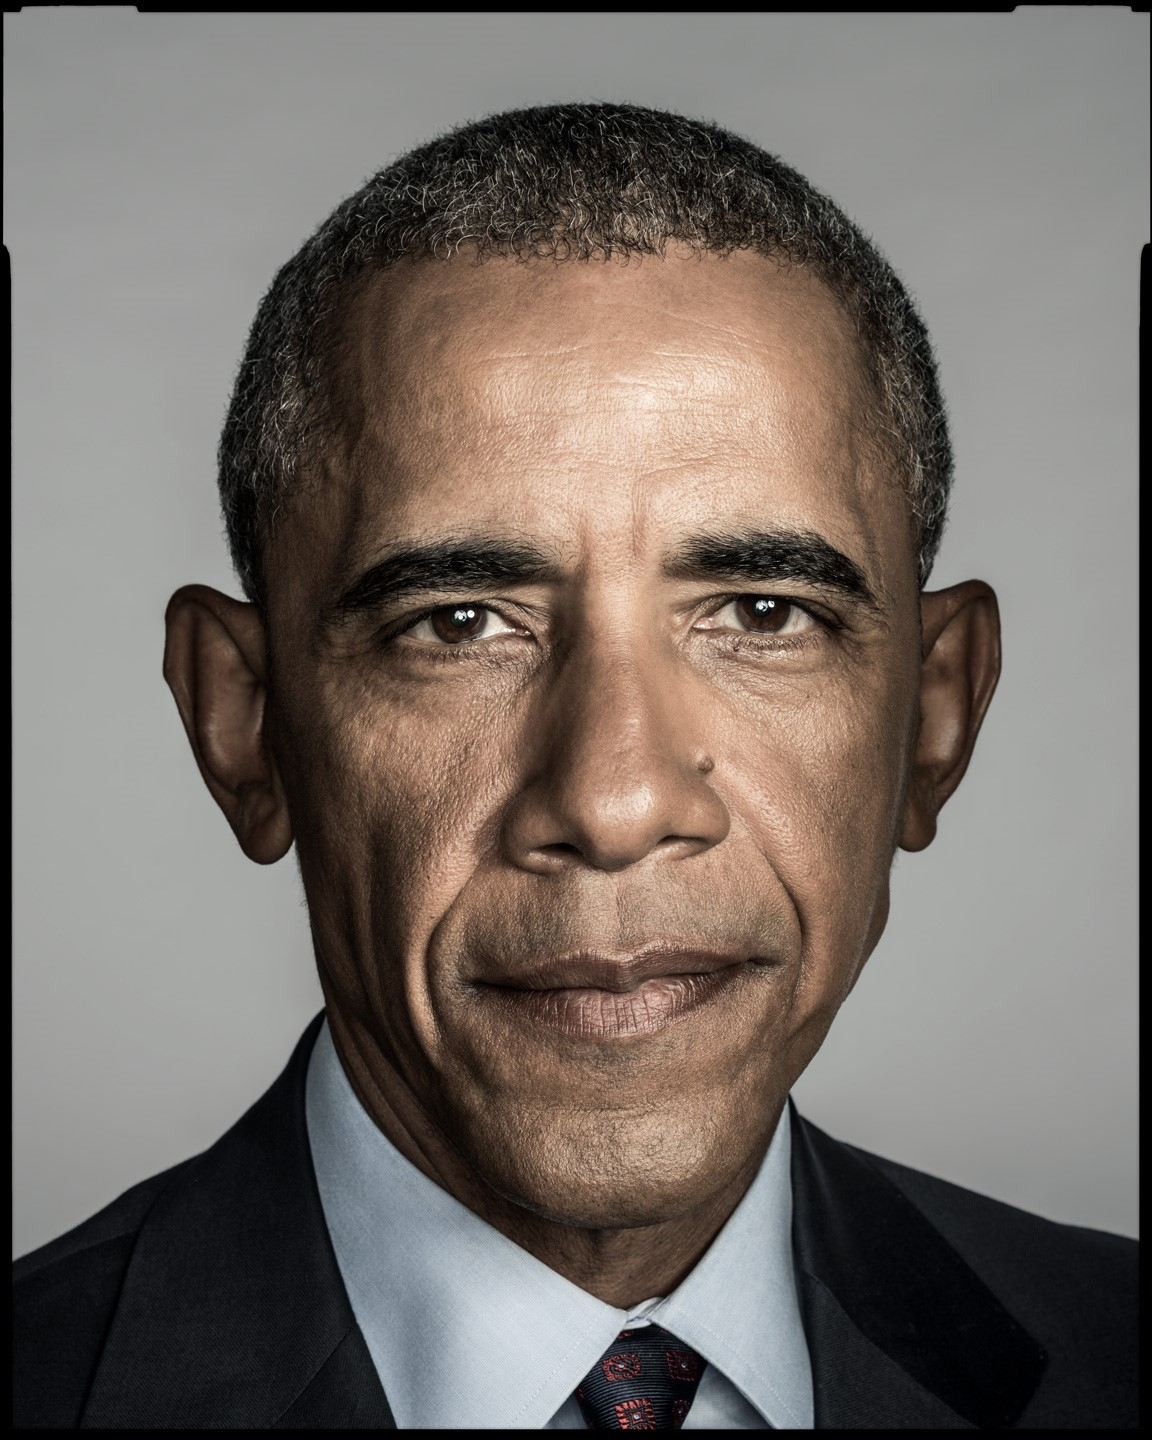 Dan Winters' Obama - The Eye of Photography